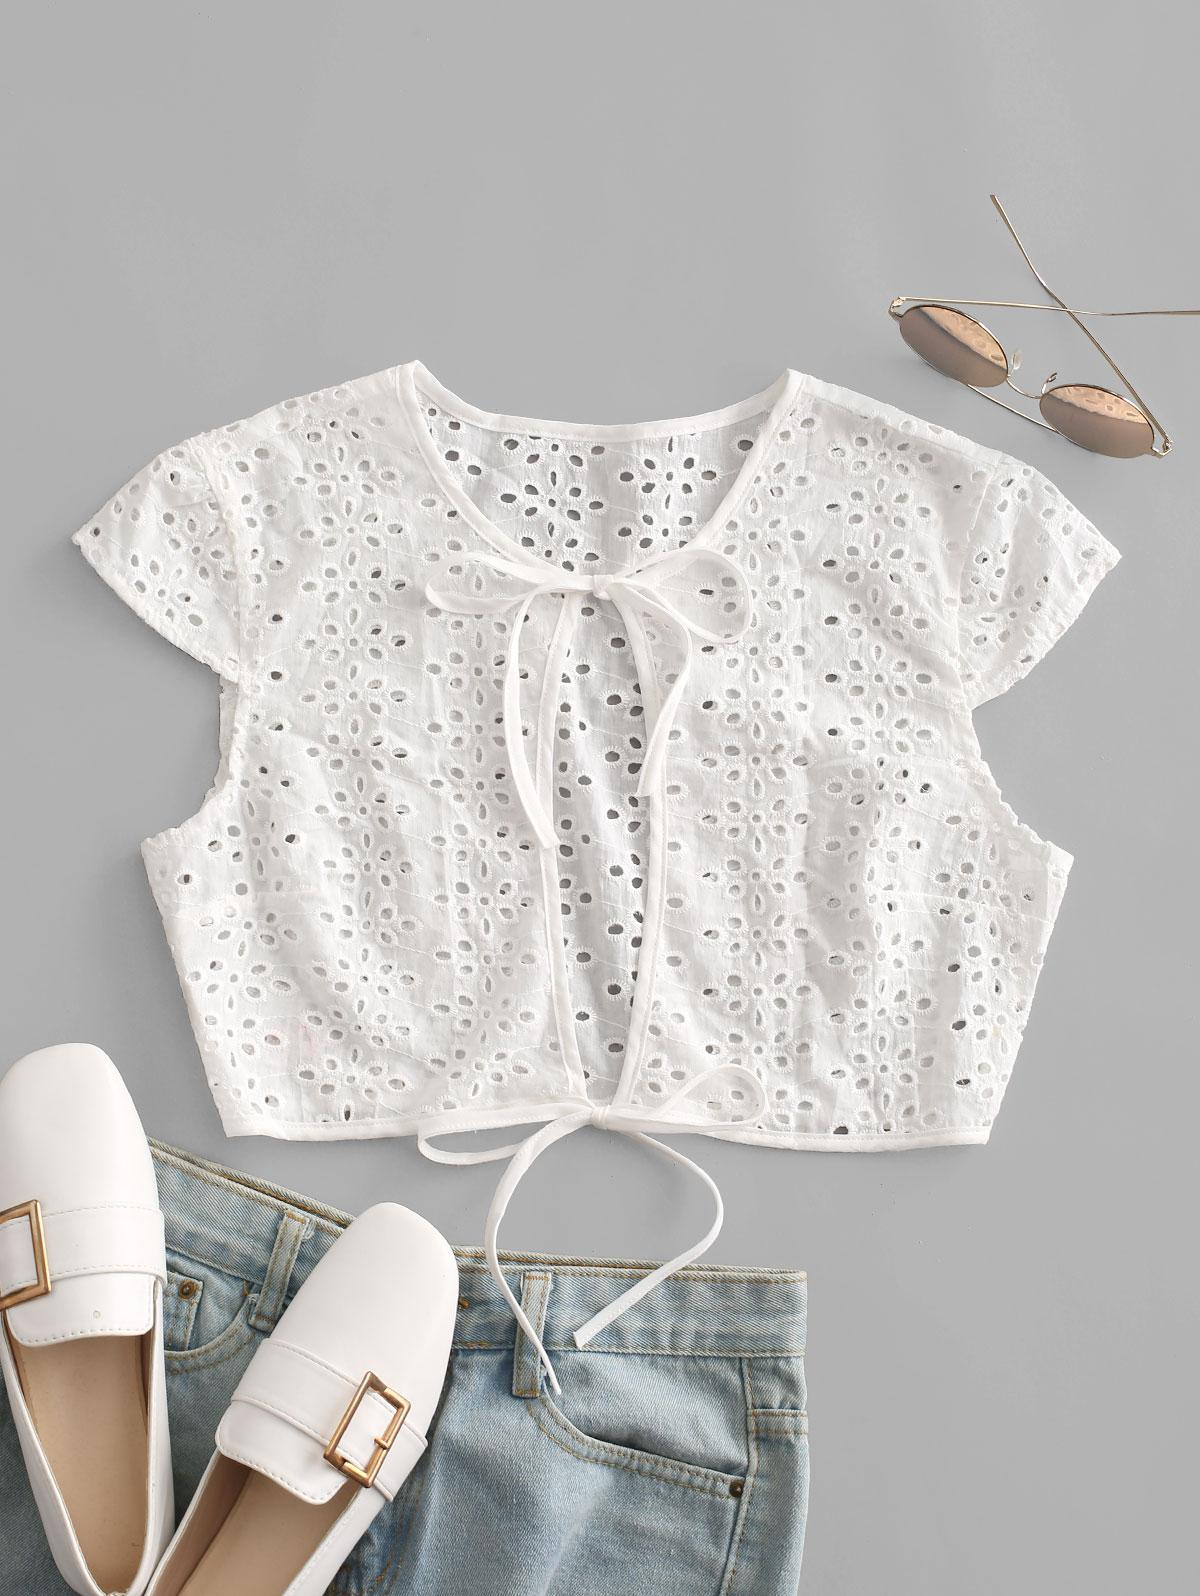 ZAFUL Broderie Anglaise Keyhole Cap Sleeve Top